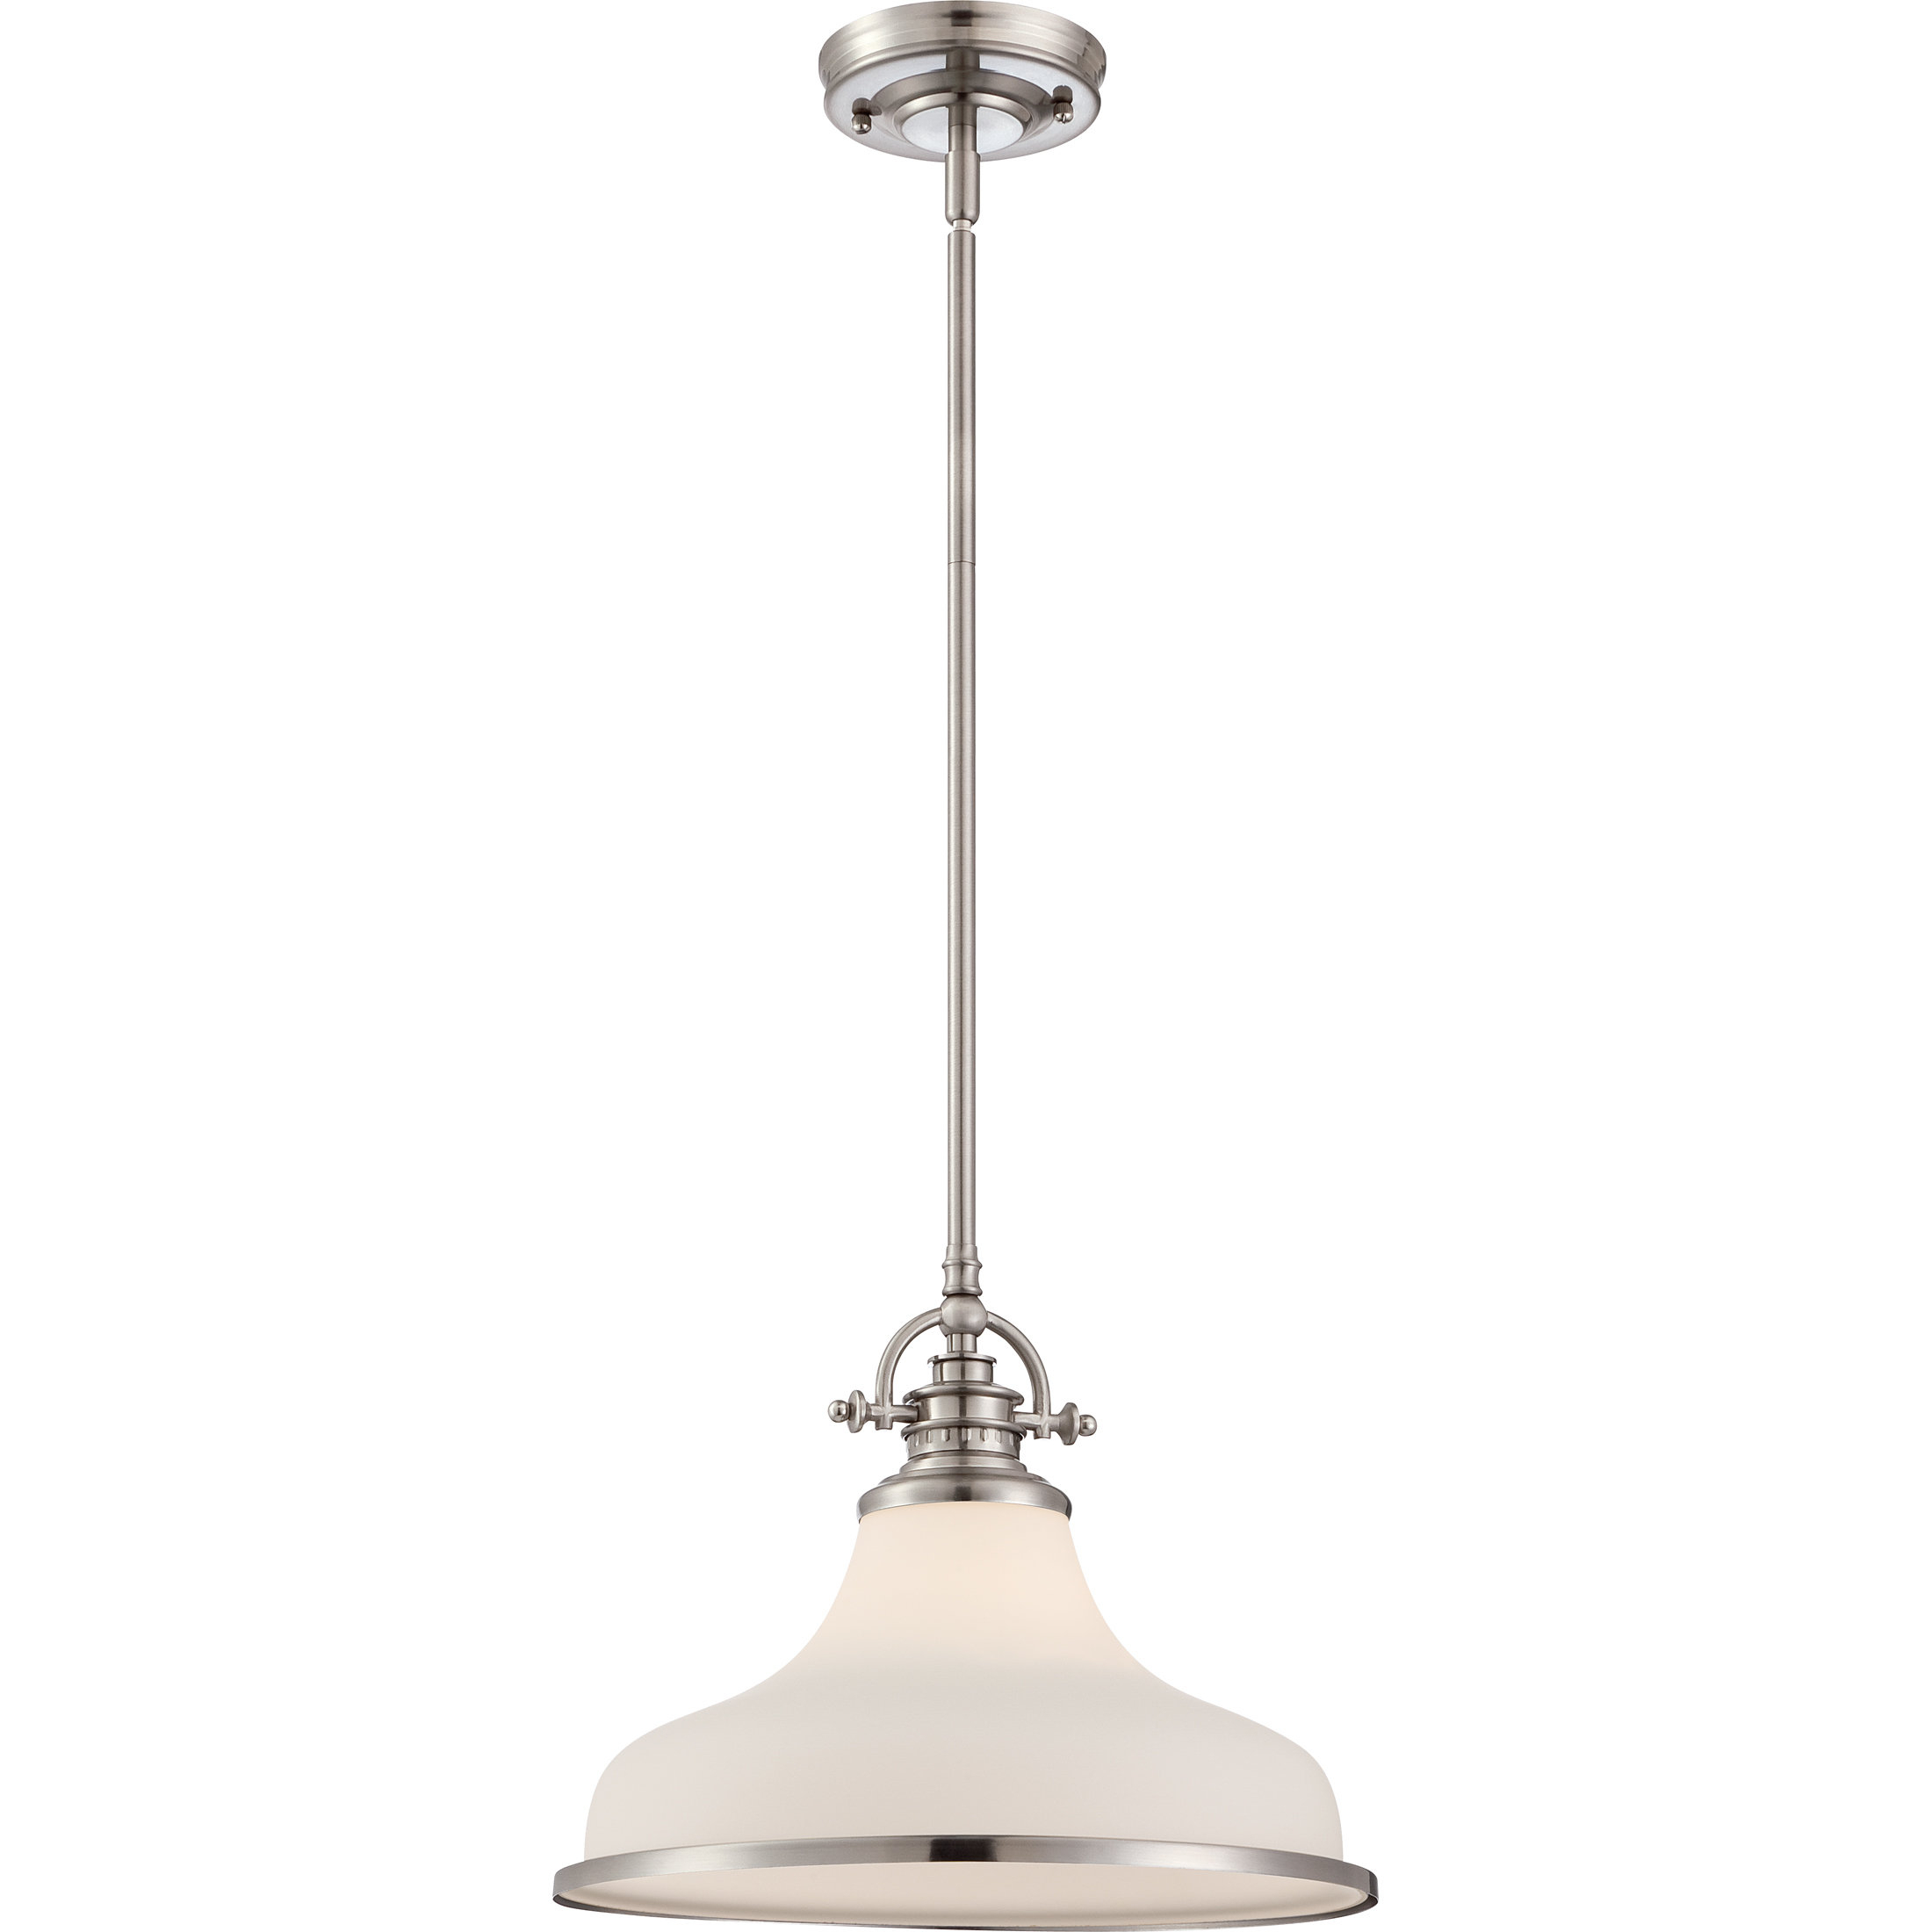 Miltiades 1-Light Single Dome Pendant with regard to Mueller 1-Light Single Dome Pendants (Image 18 of 30)